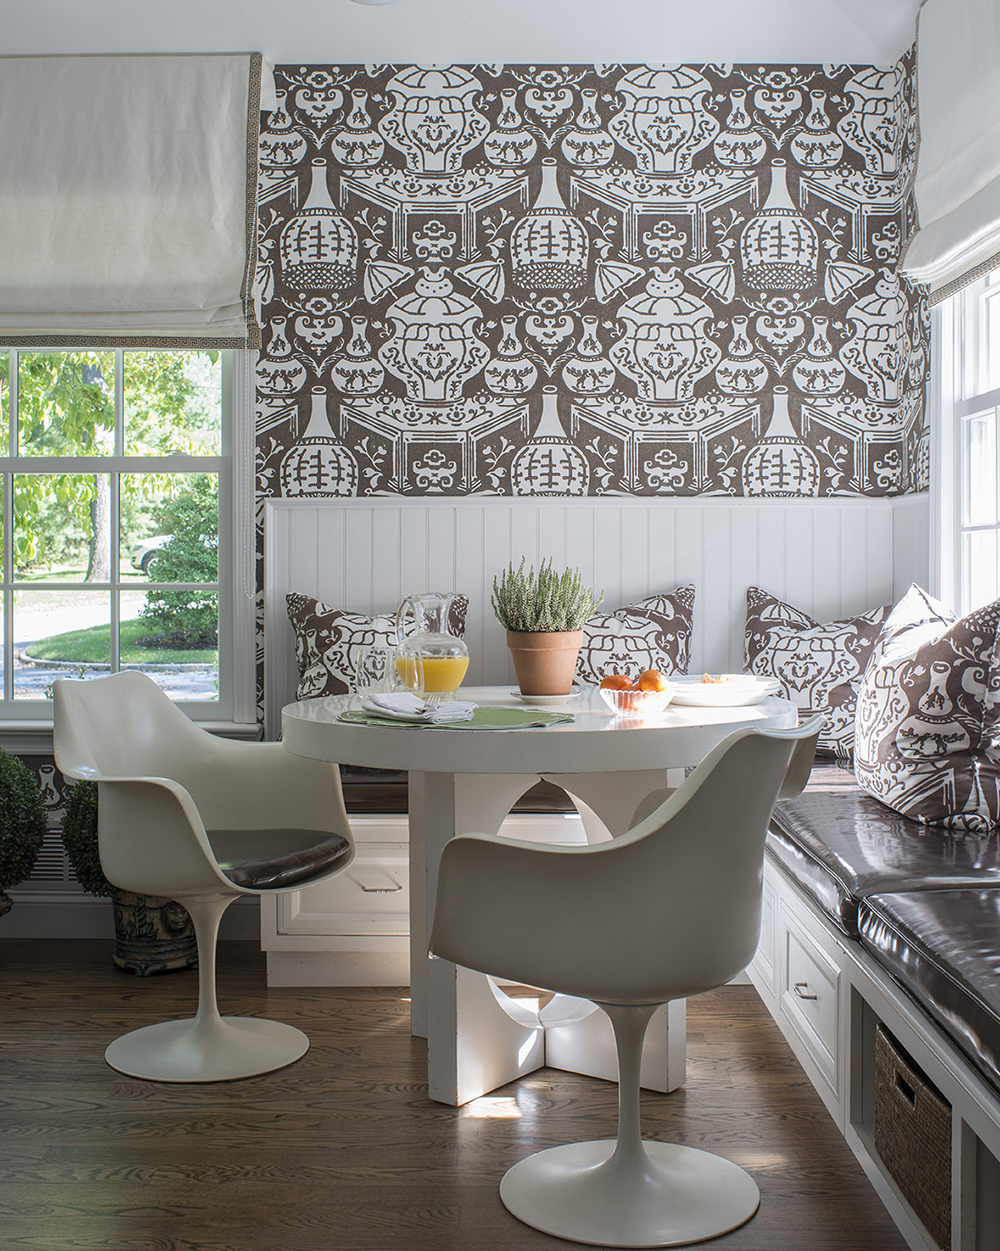 Meg+Braff+-+Central+Island+-+Ligh+Room+Ornate+Wallpaper+-+137-o.jpg